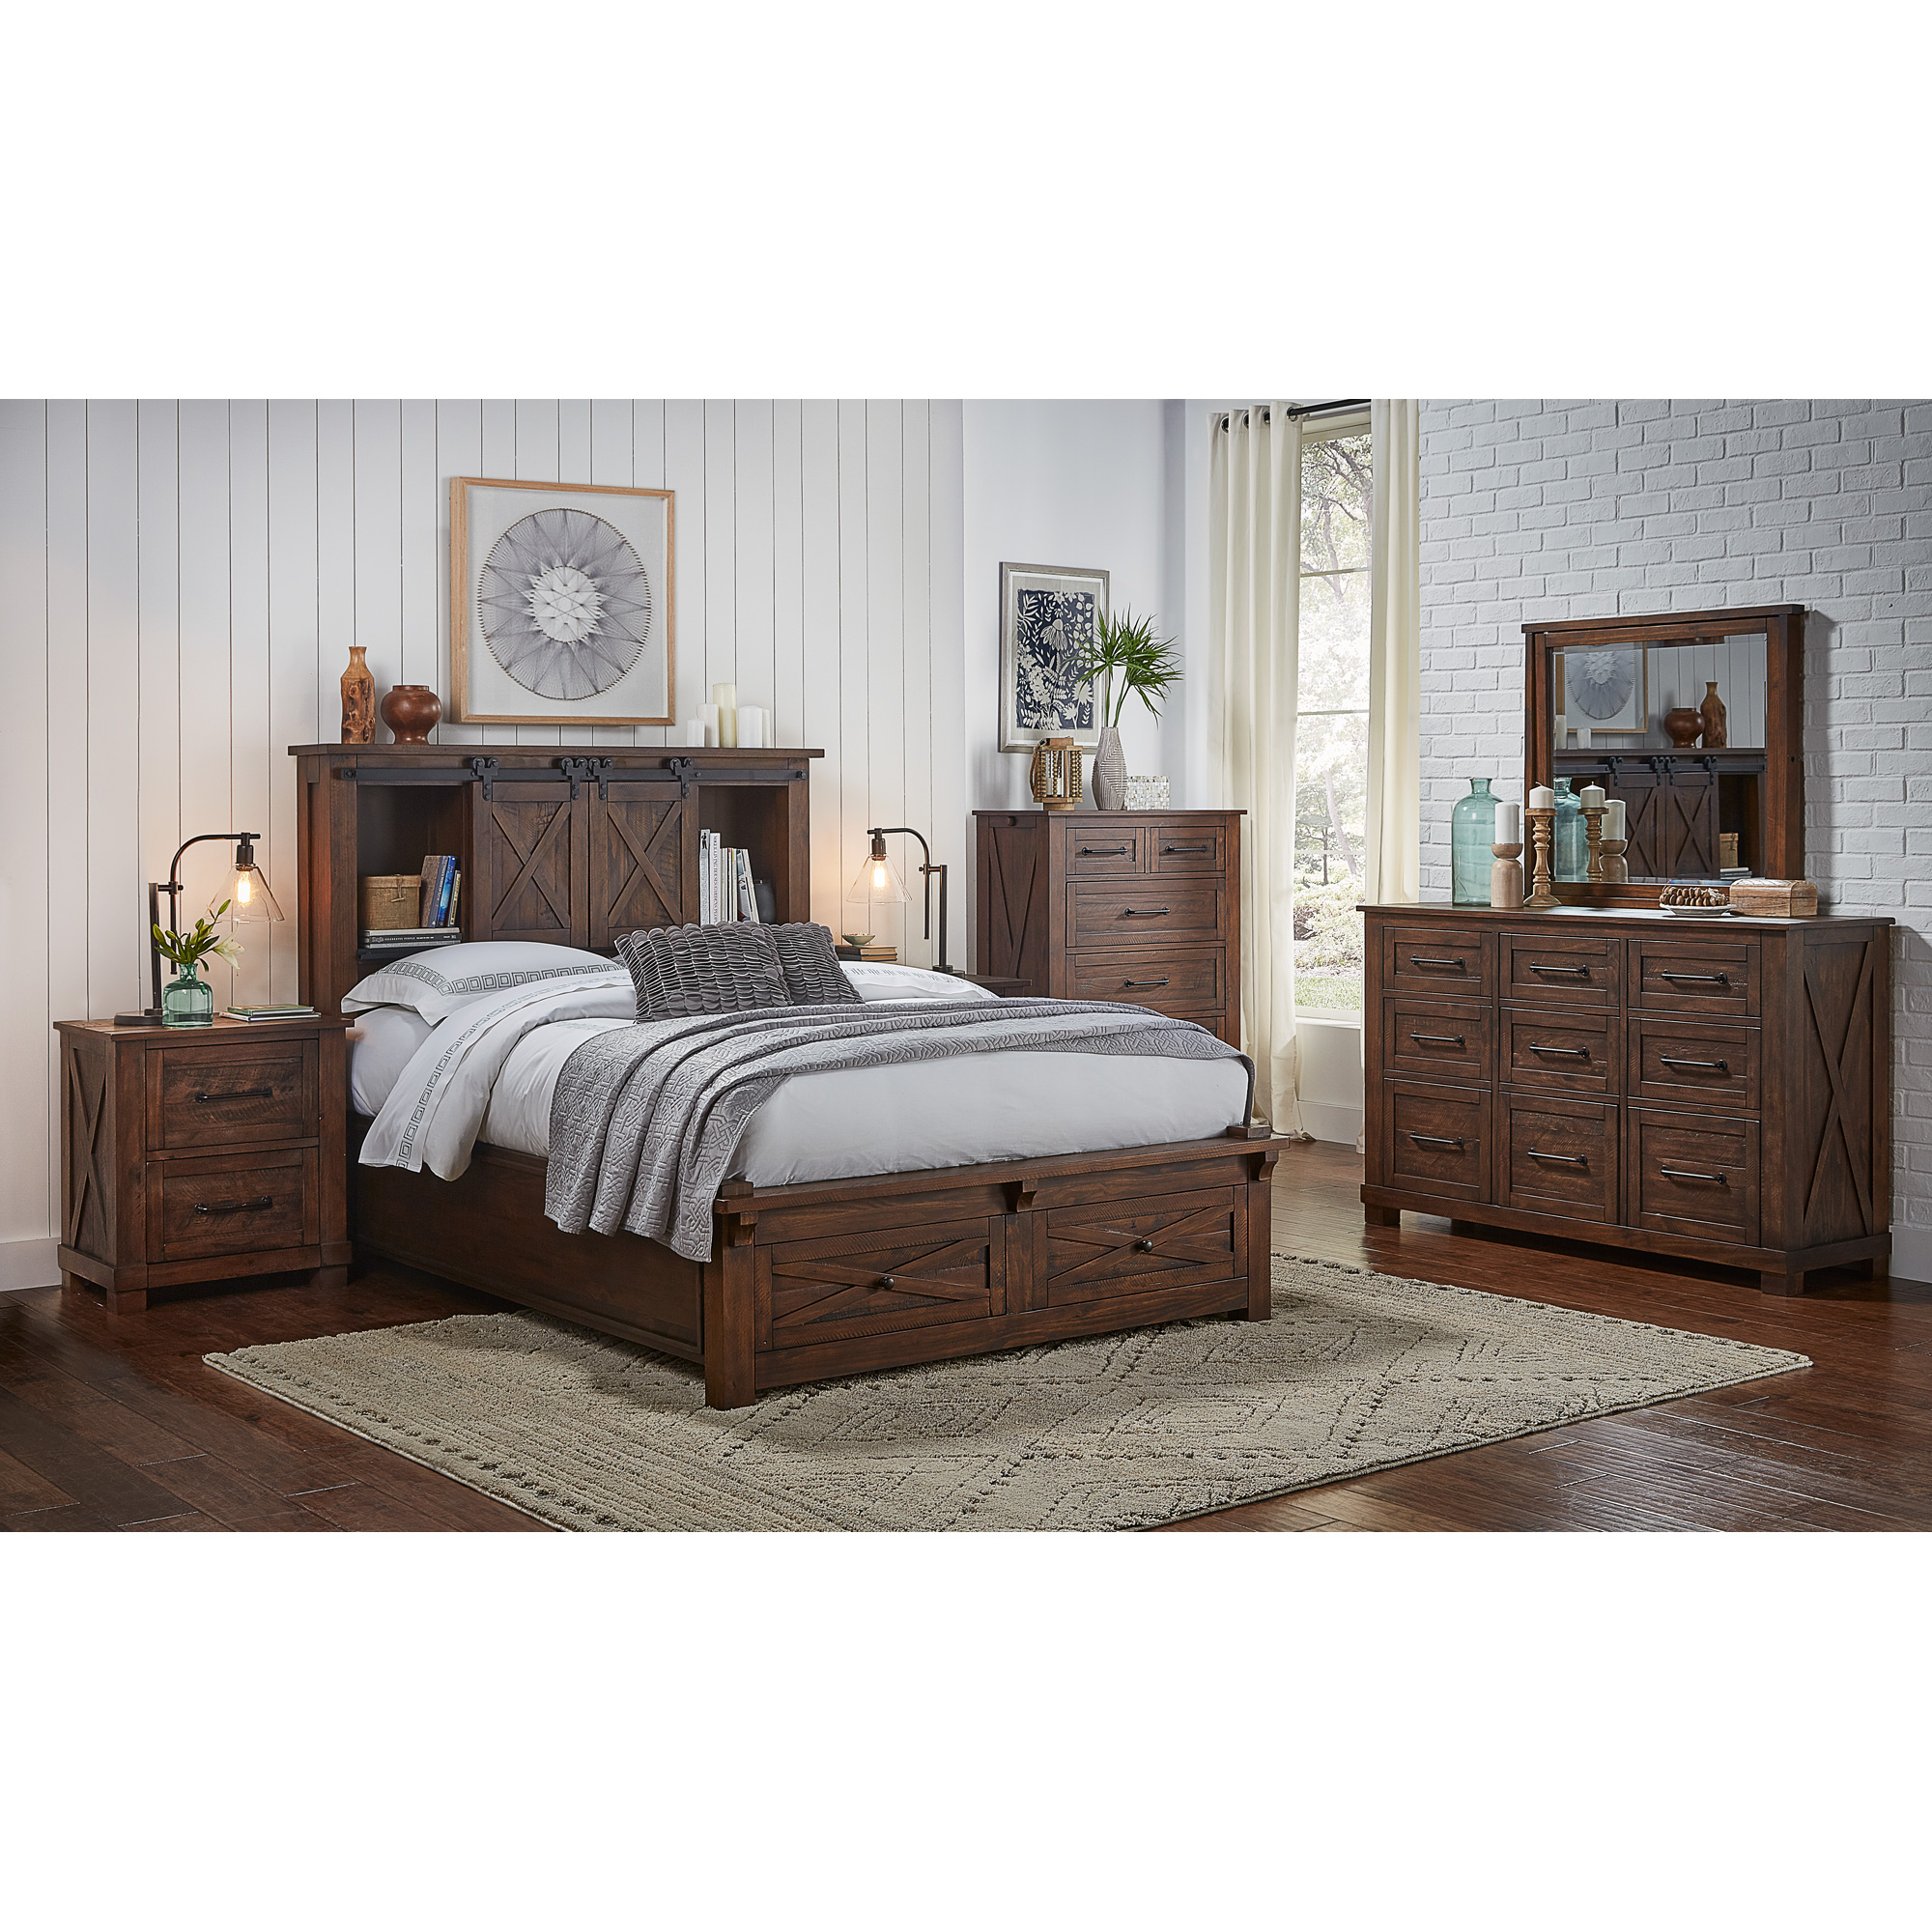 America | Sun Valley Rustic Timber King Storage 4 Piece Room Group Bedroom Set